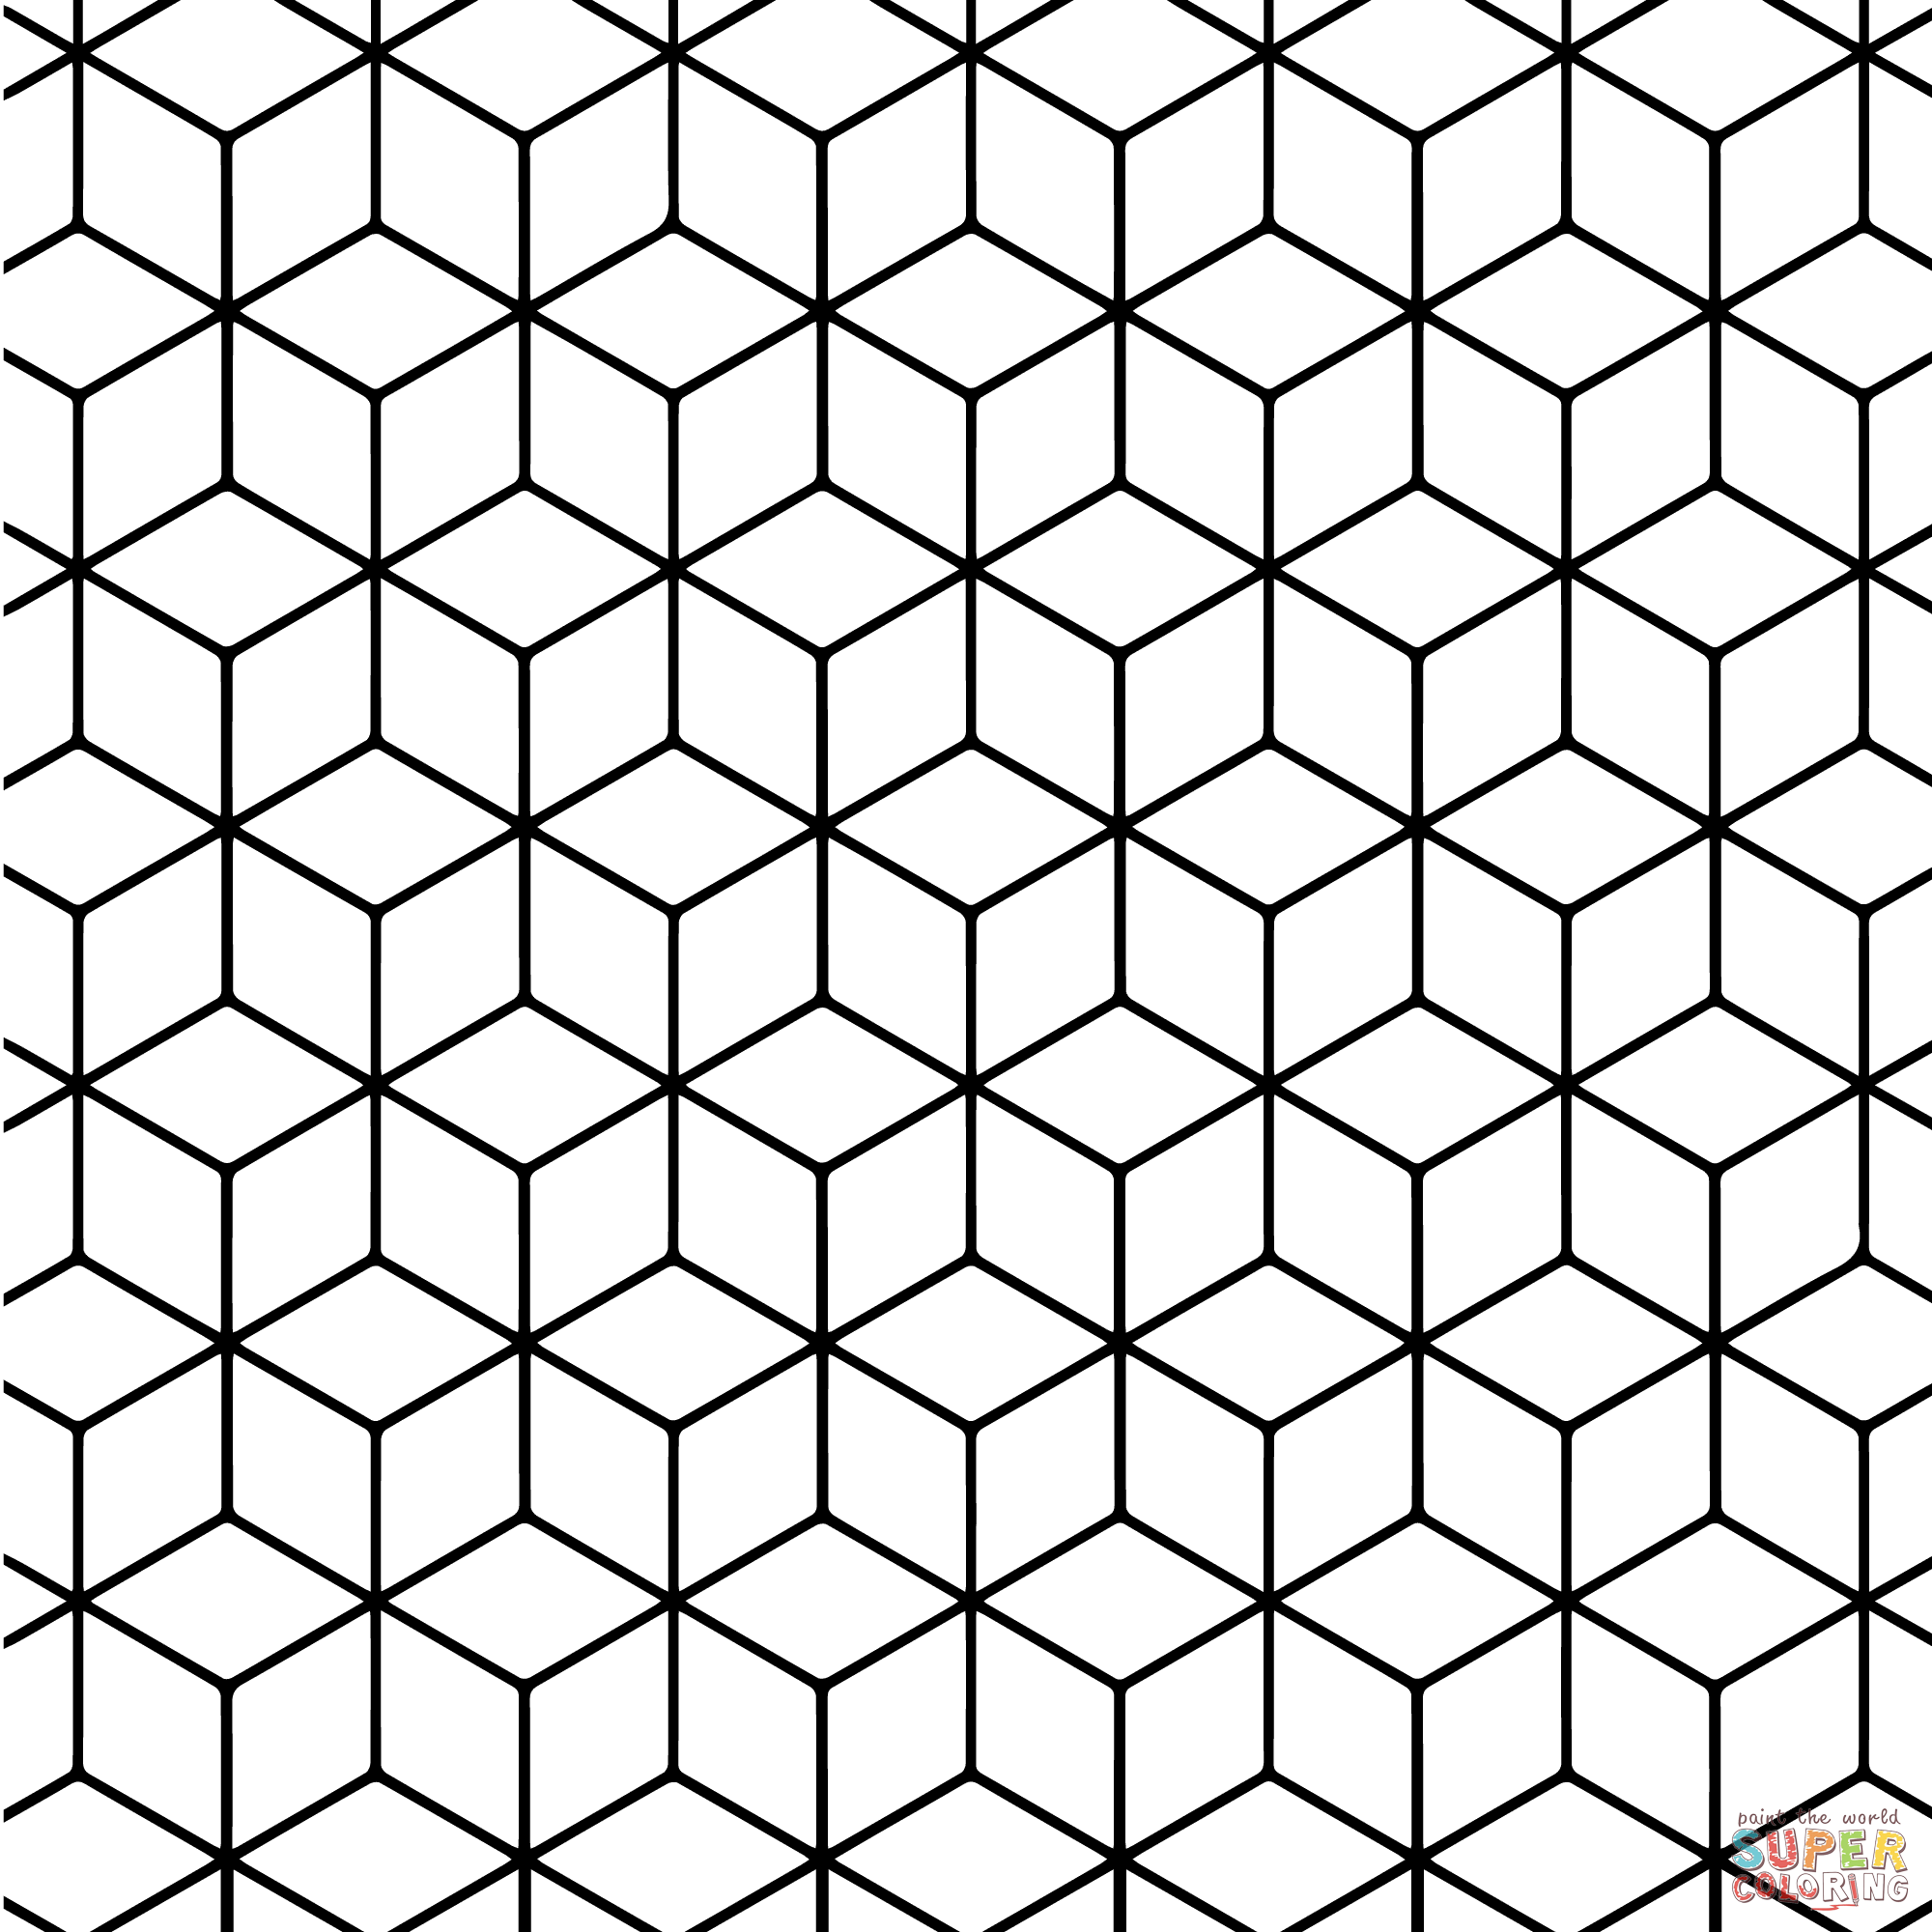 printable coloring pages patterns - Coloring Pages Patterns Geometric